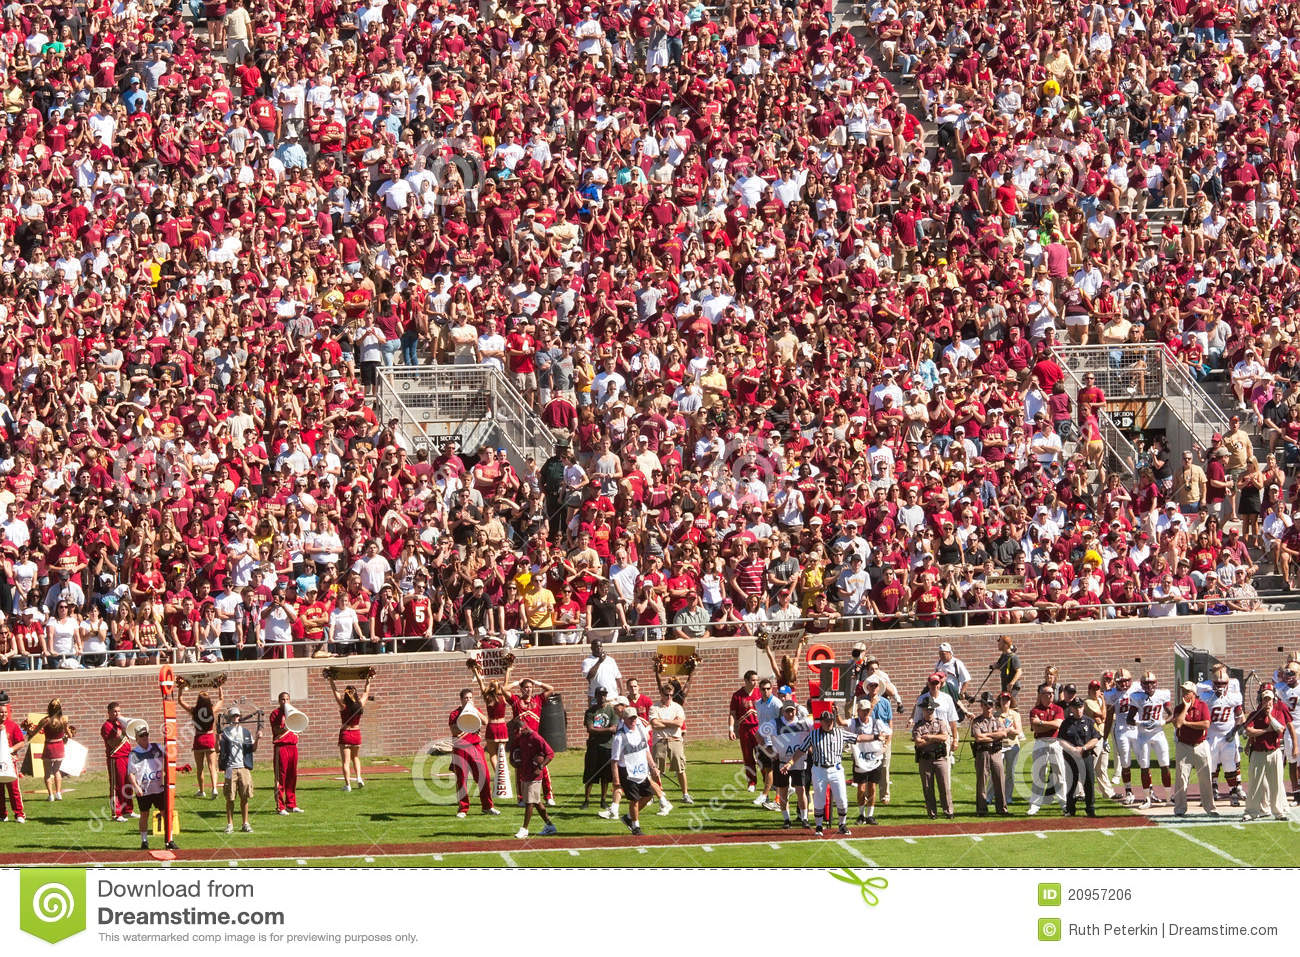 Campbell Crowd Doak Florida Football Out Sold Stadium.